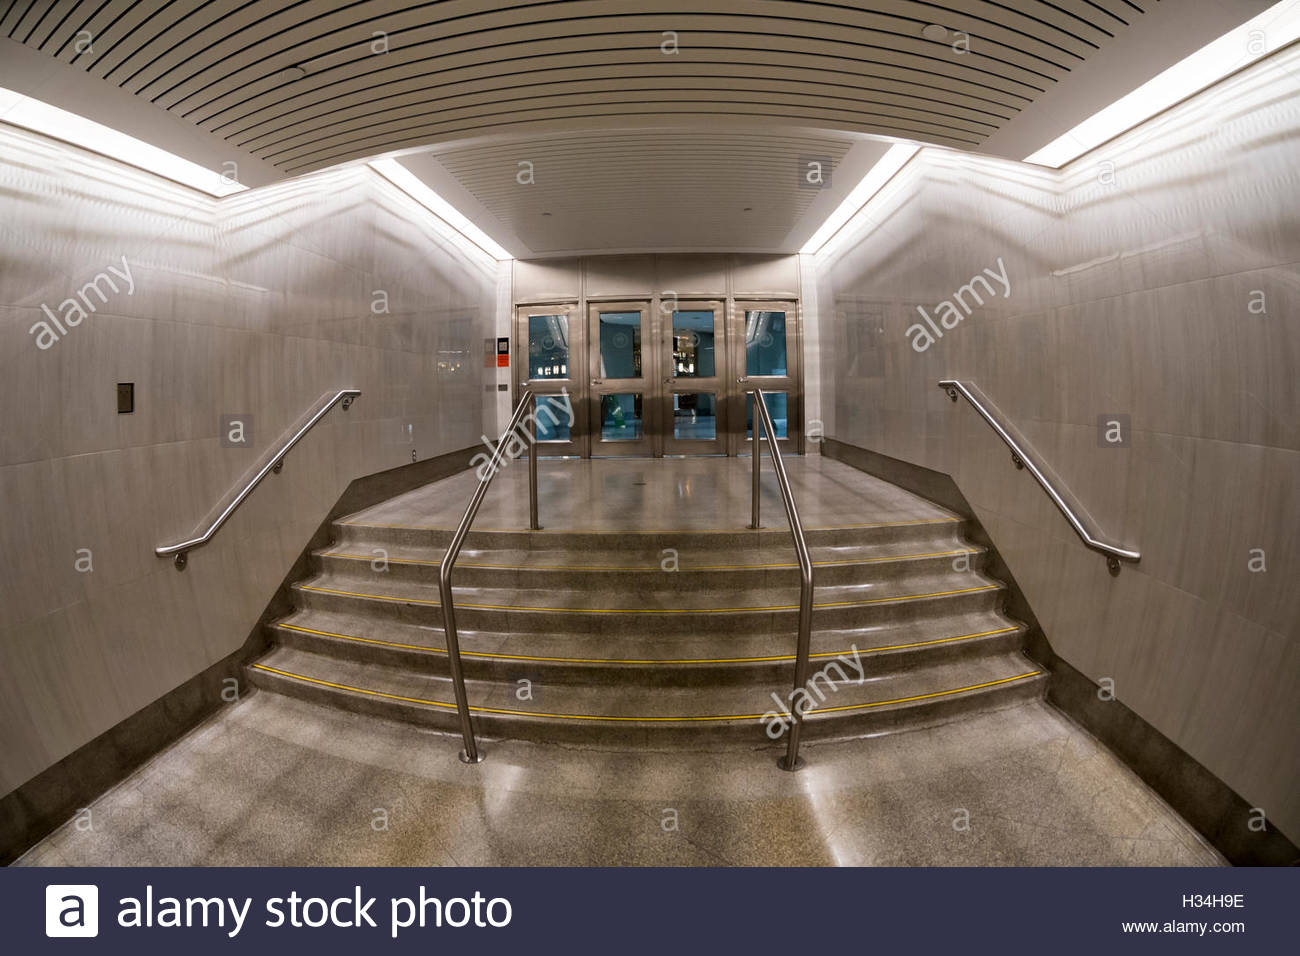 Flight of stairs in subway station. Wide lens view of a flight of stars leading to an entrance with doors. - Stock Image